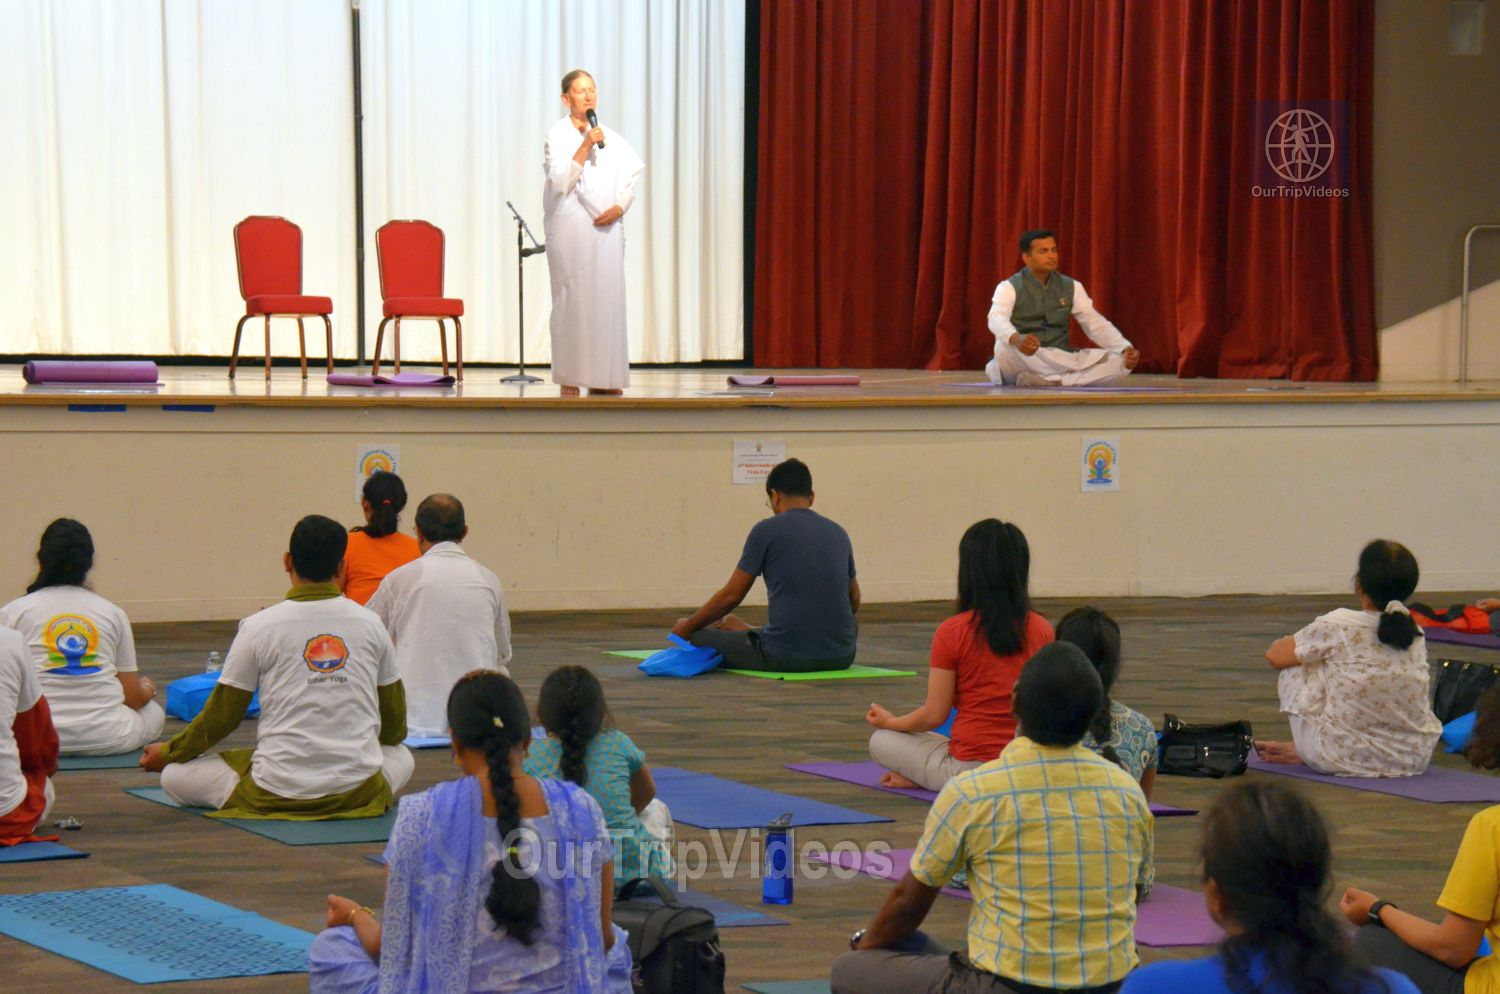 International Yoga Day at ICC, Milpitas, CA, USA - Picture 50 of 50